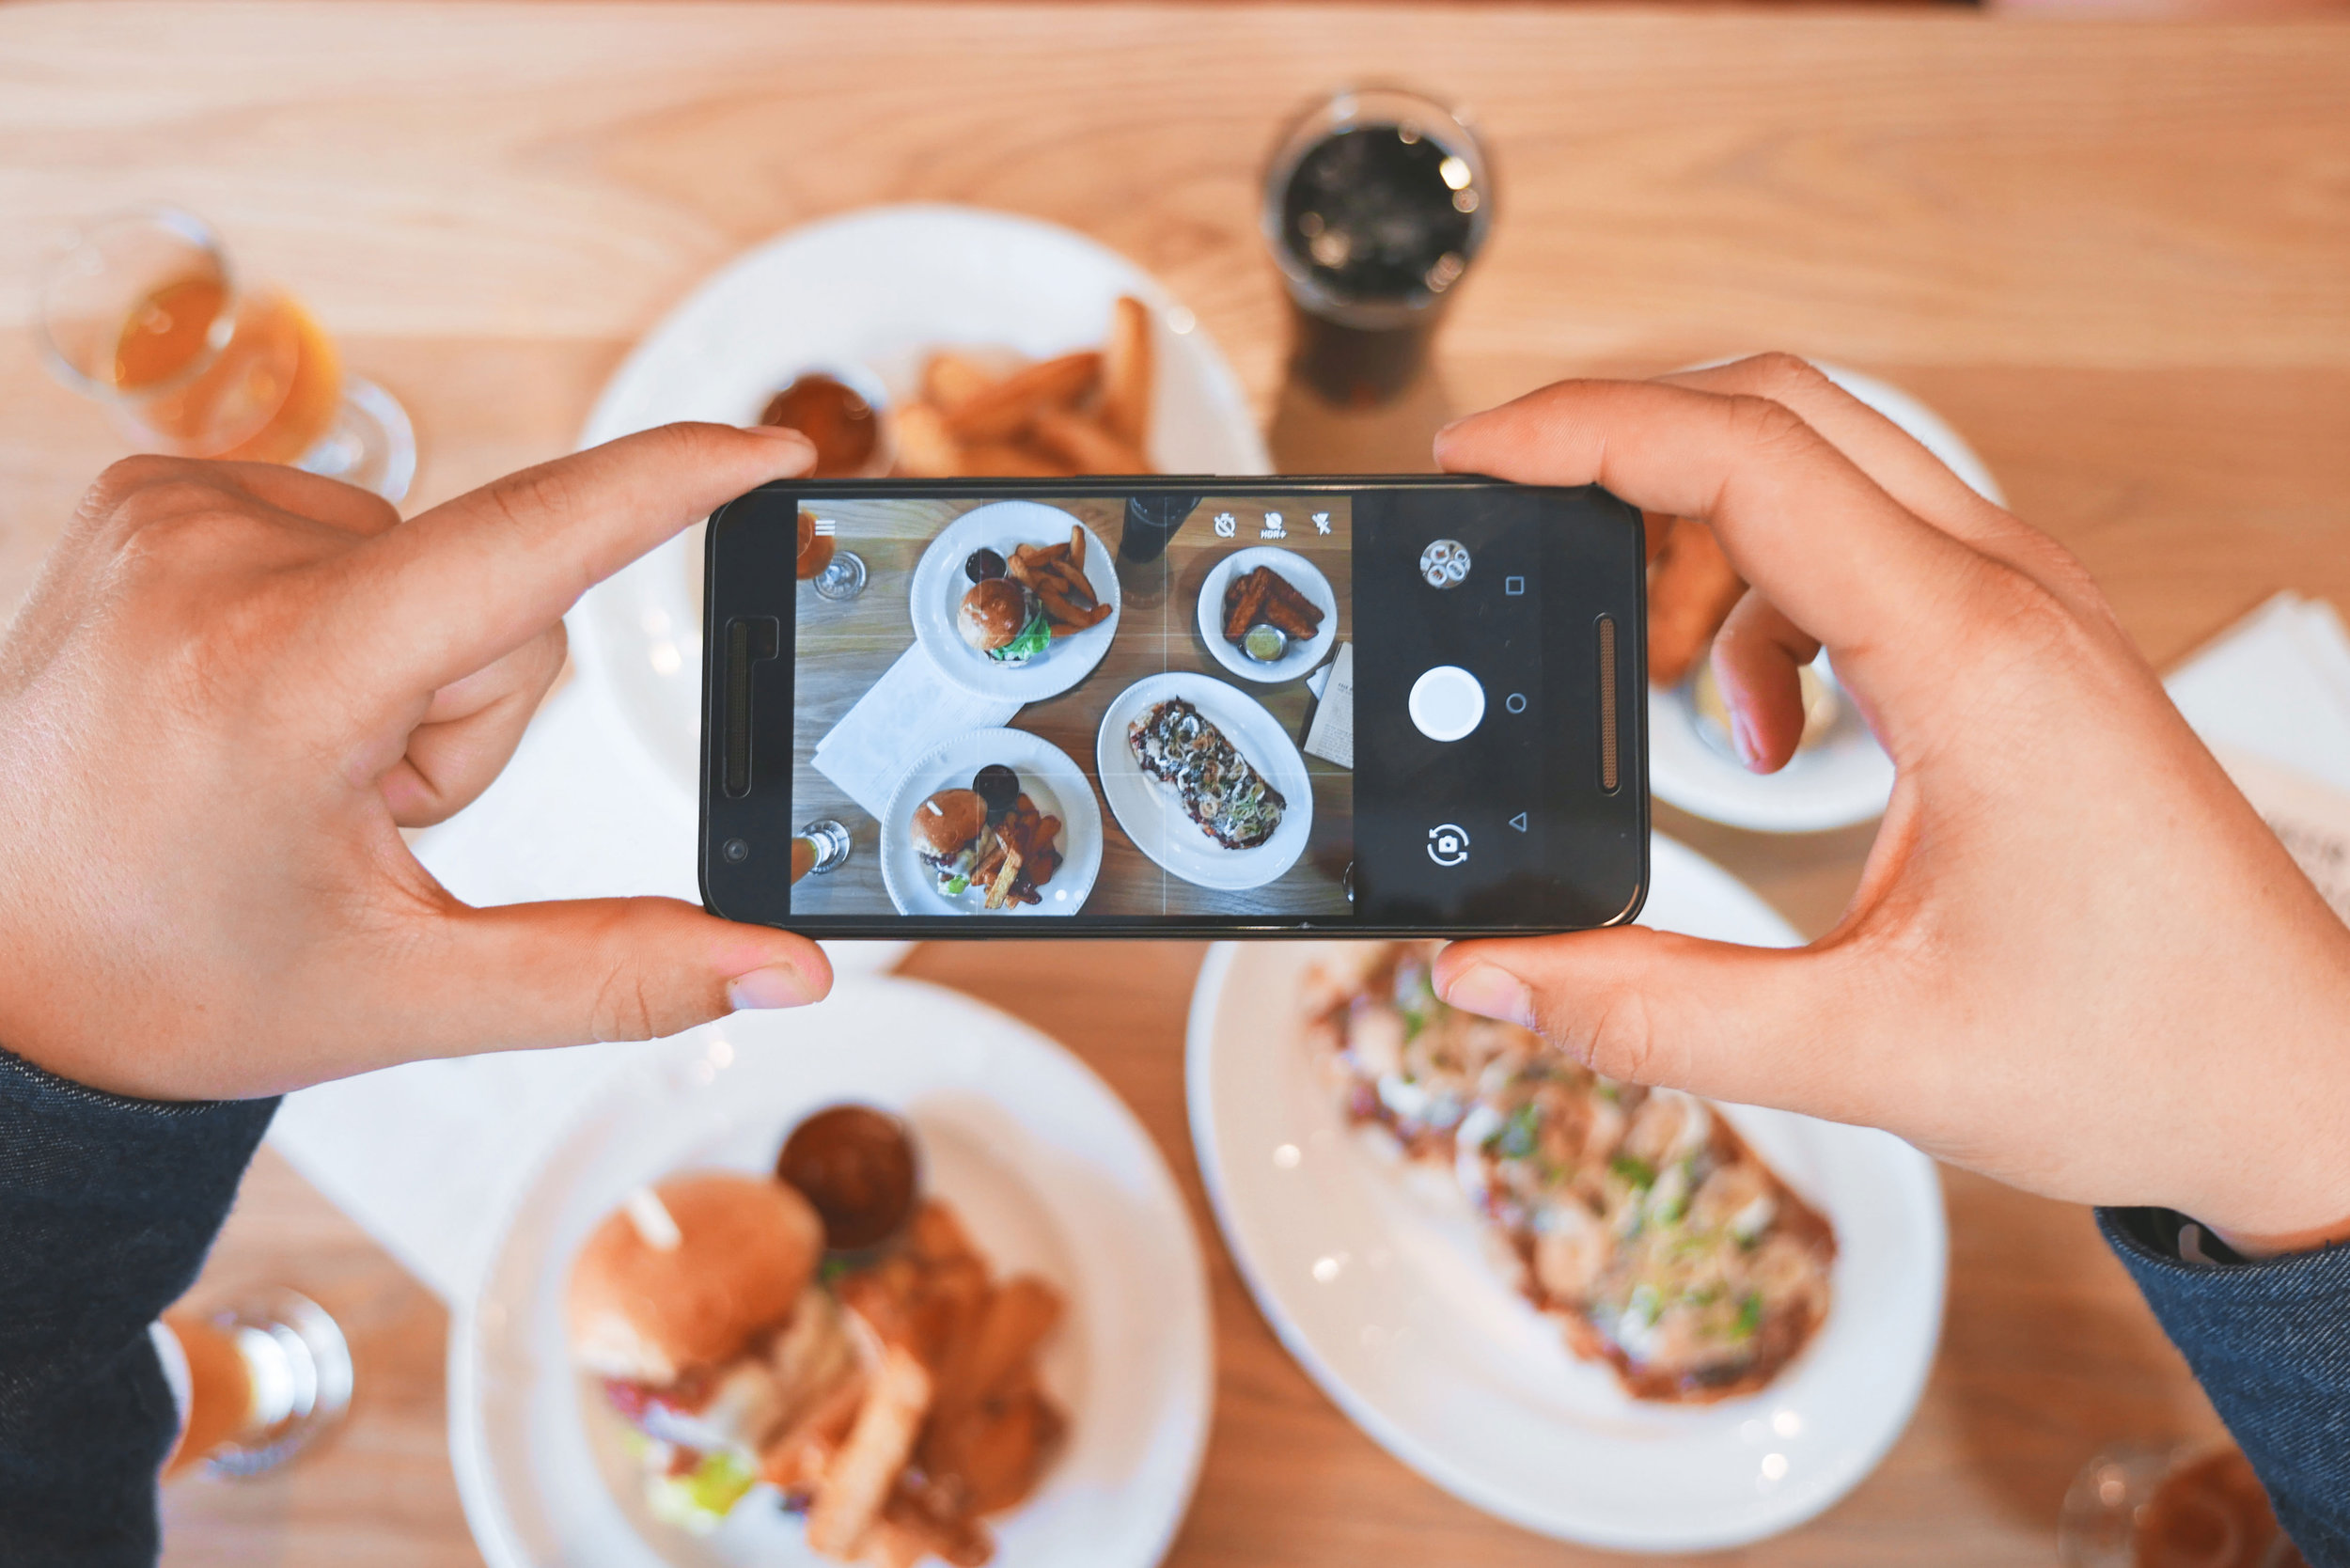 Restaurants Can Use Influencer Marketing To Increase Business